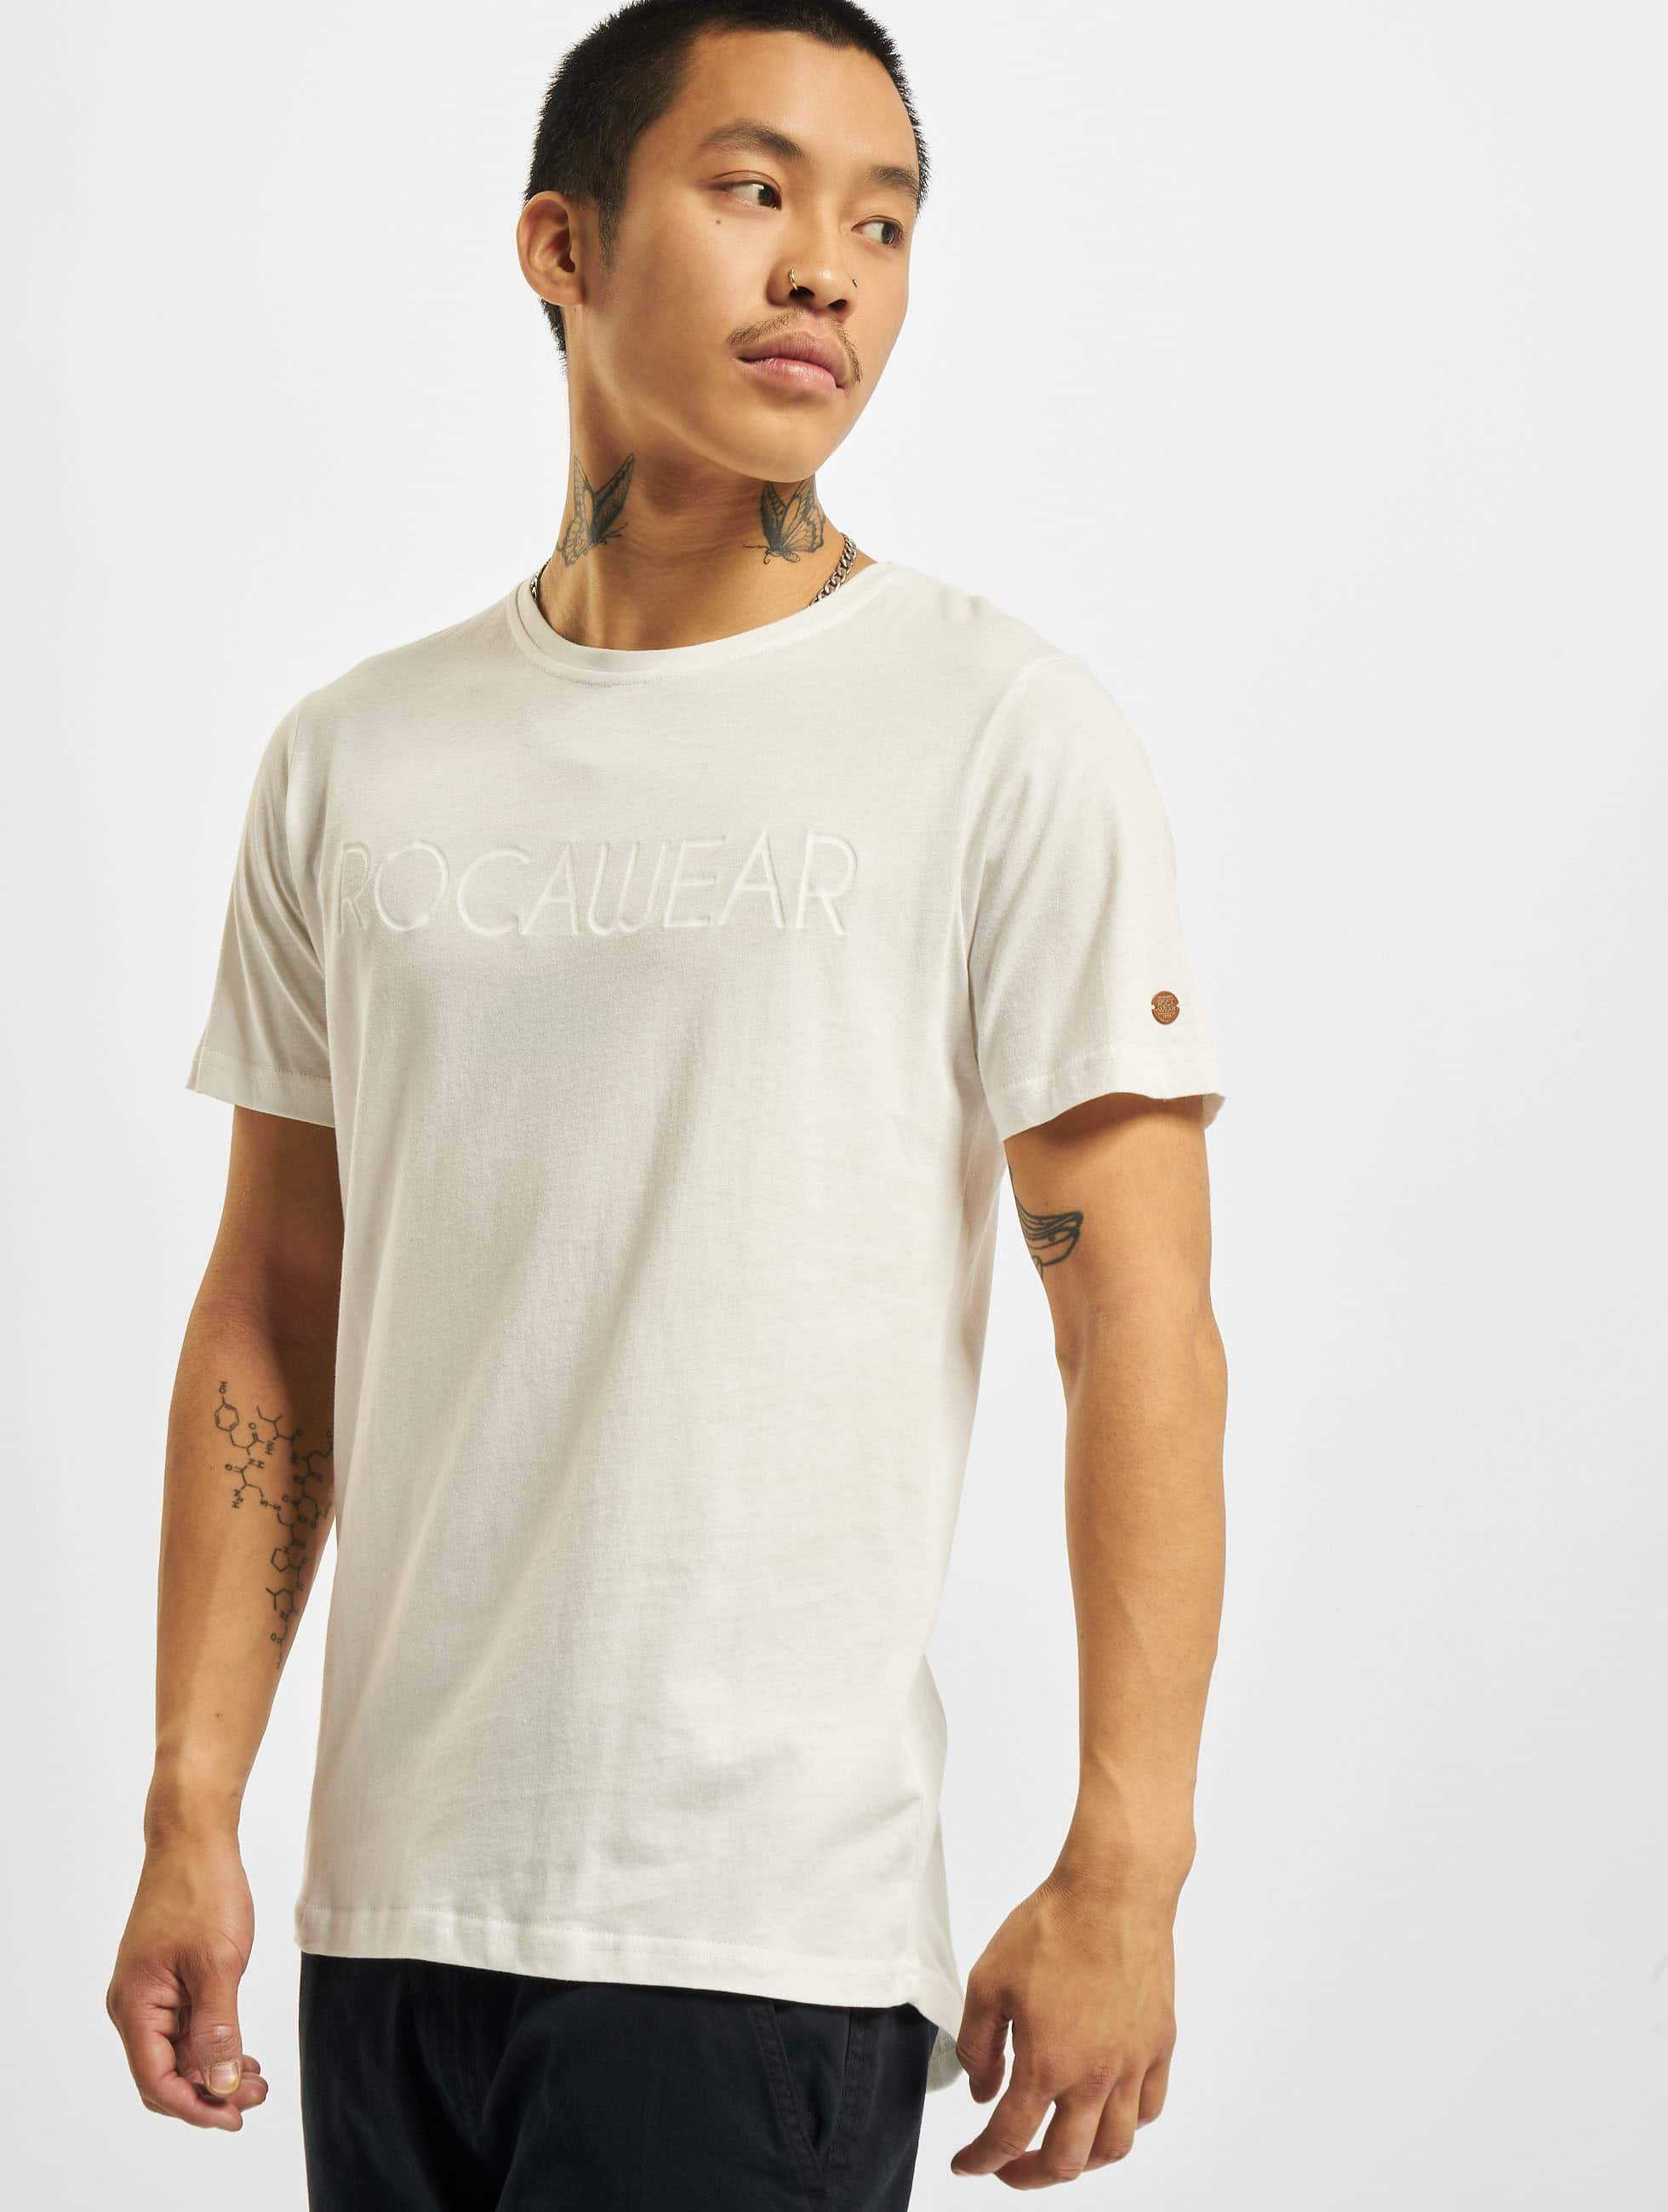 Rocawear / T-Shirt Logo in white L